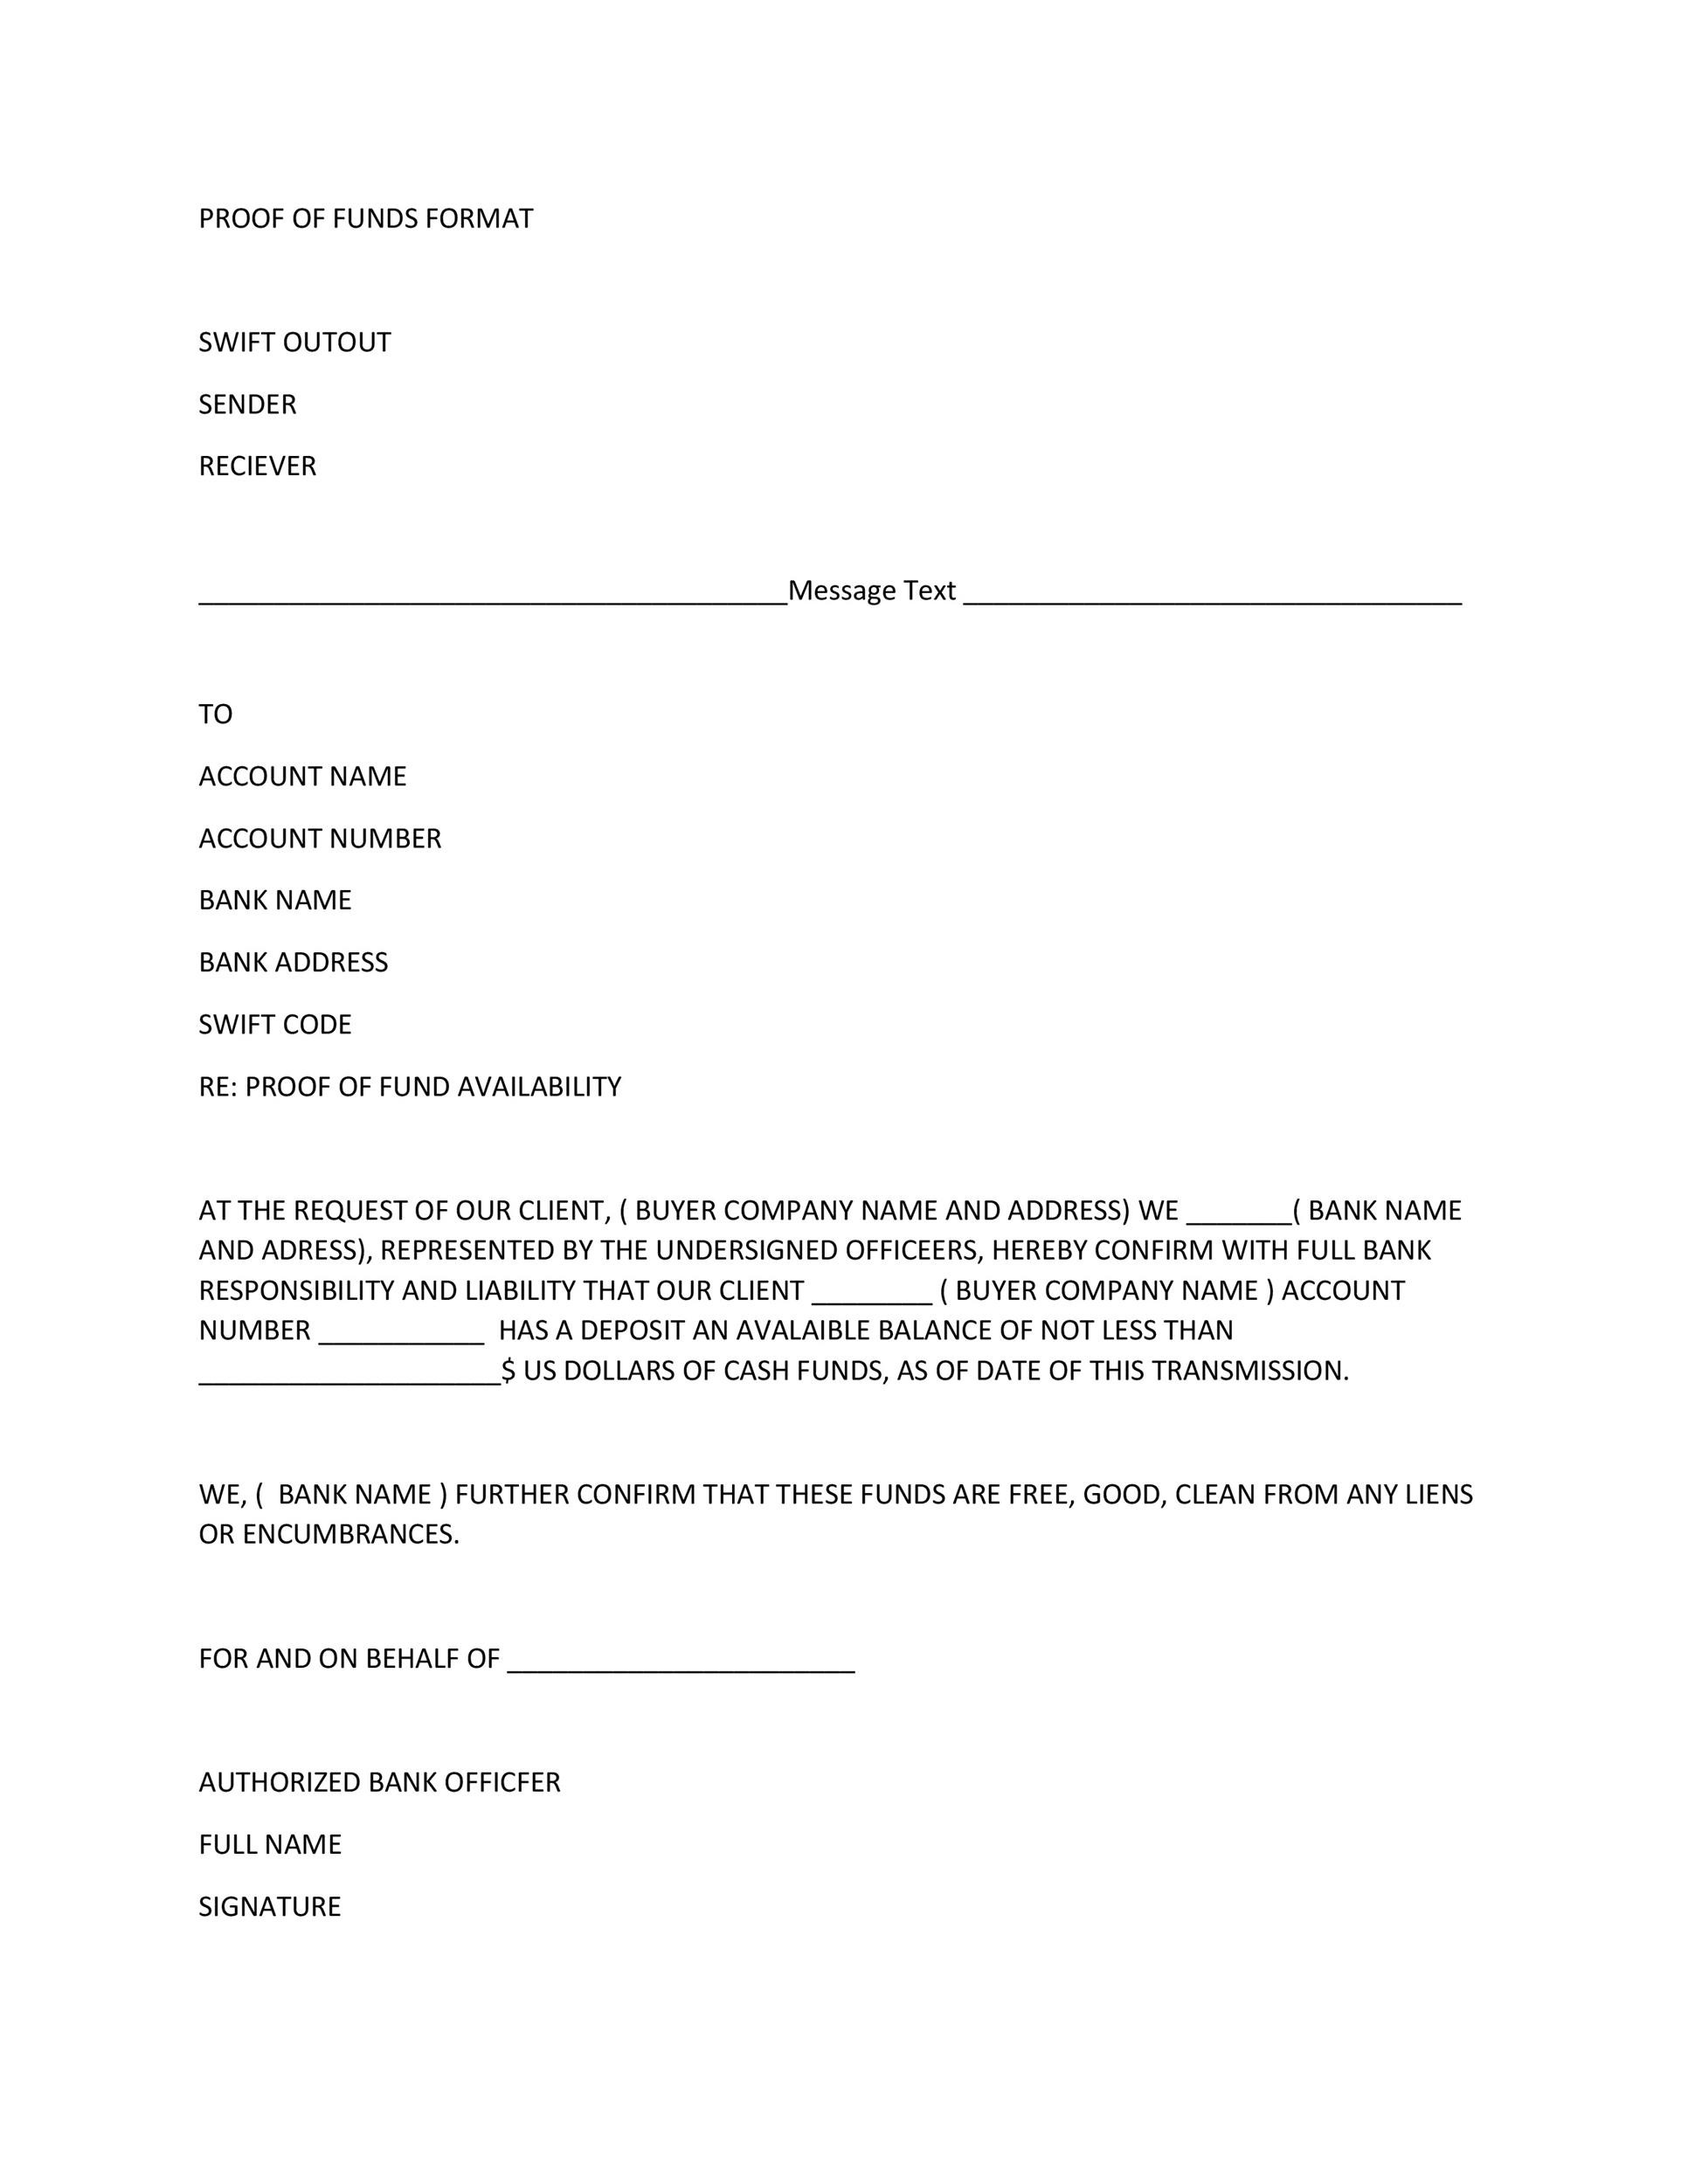 Free proof of funds letter template 16